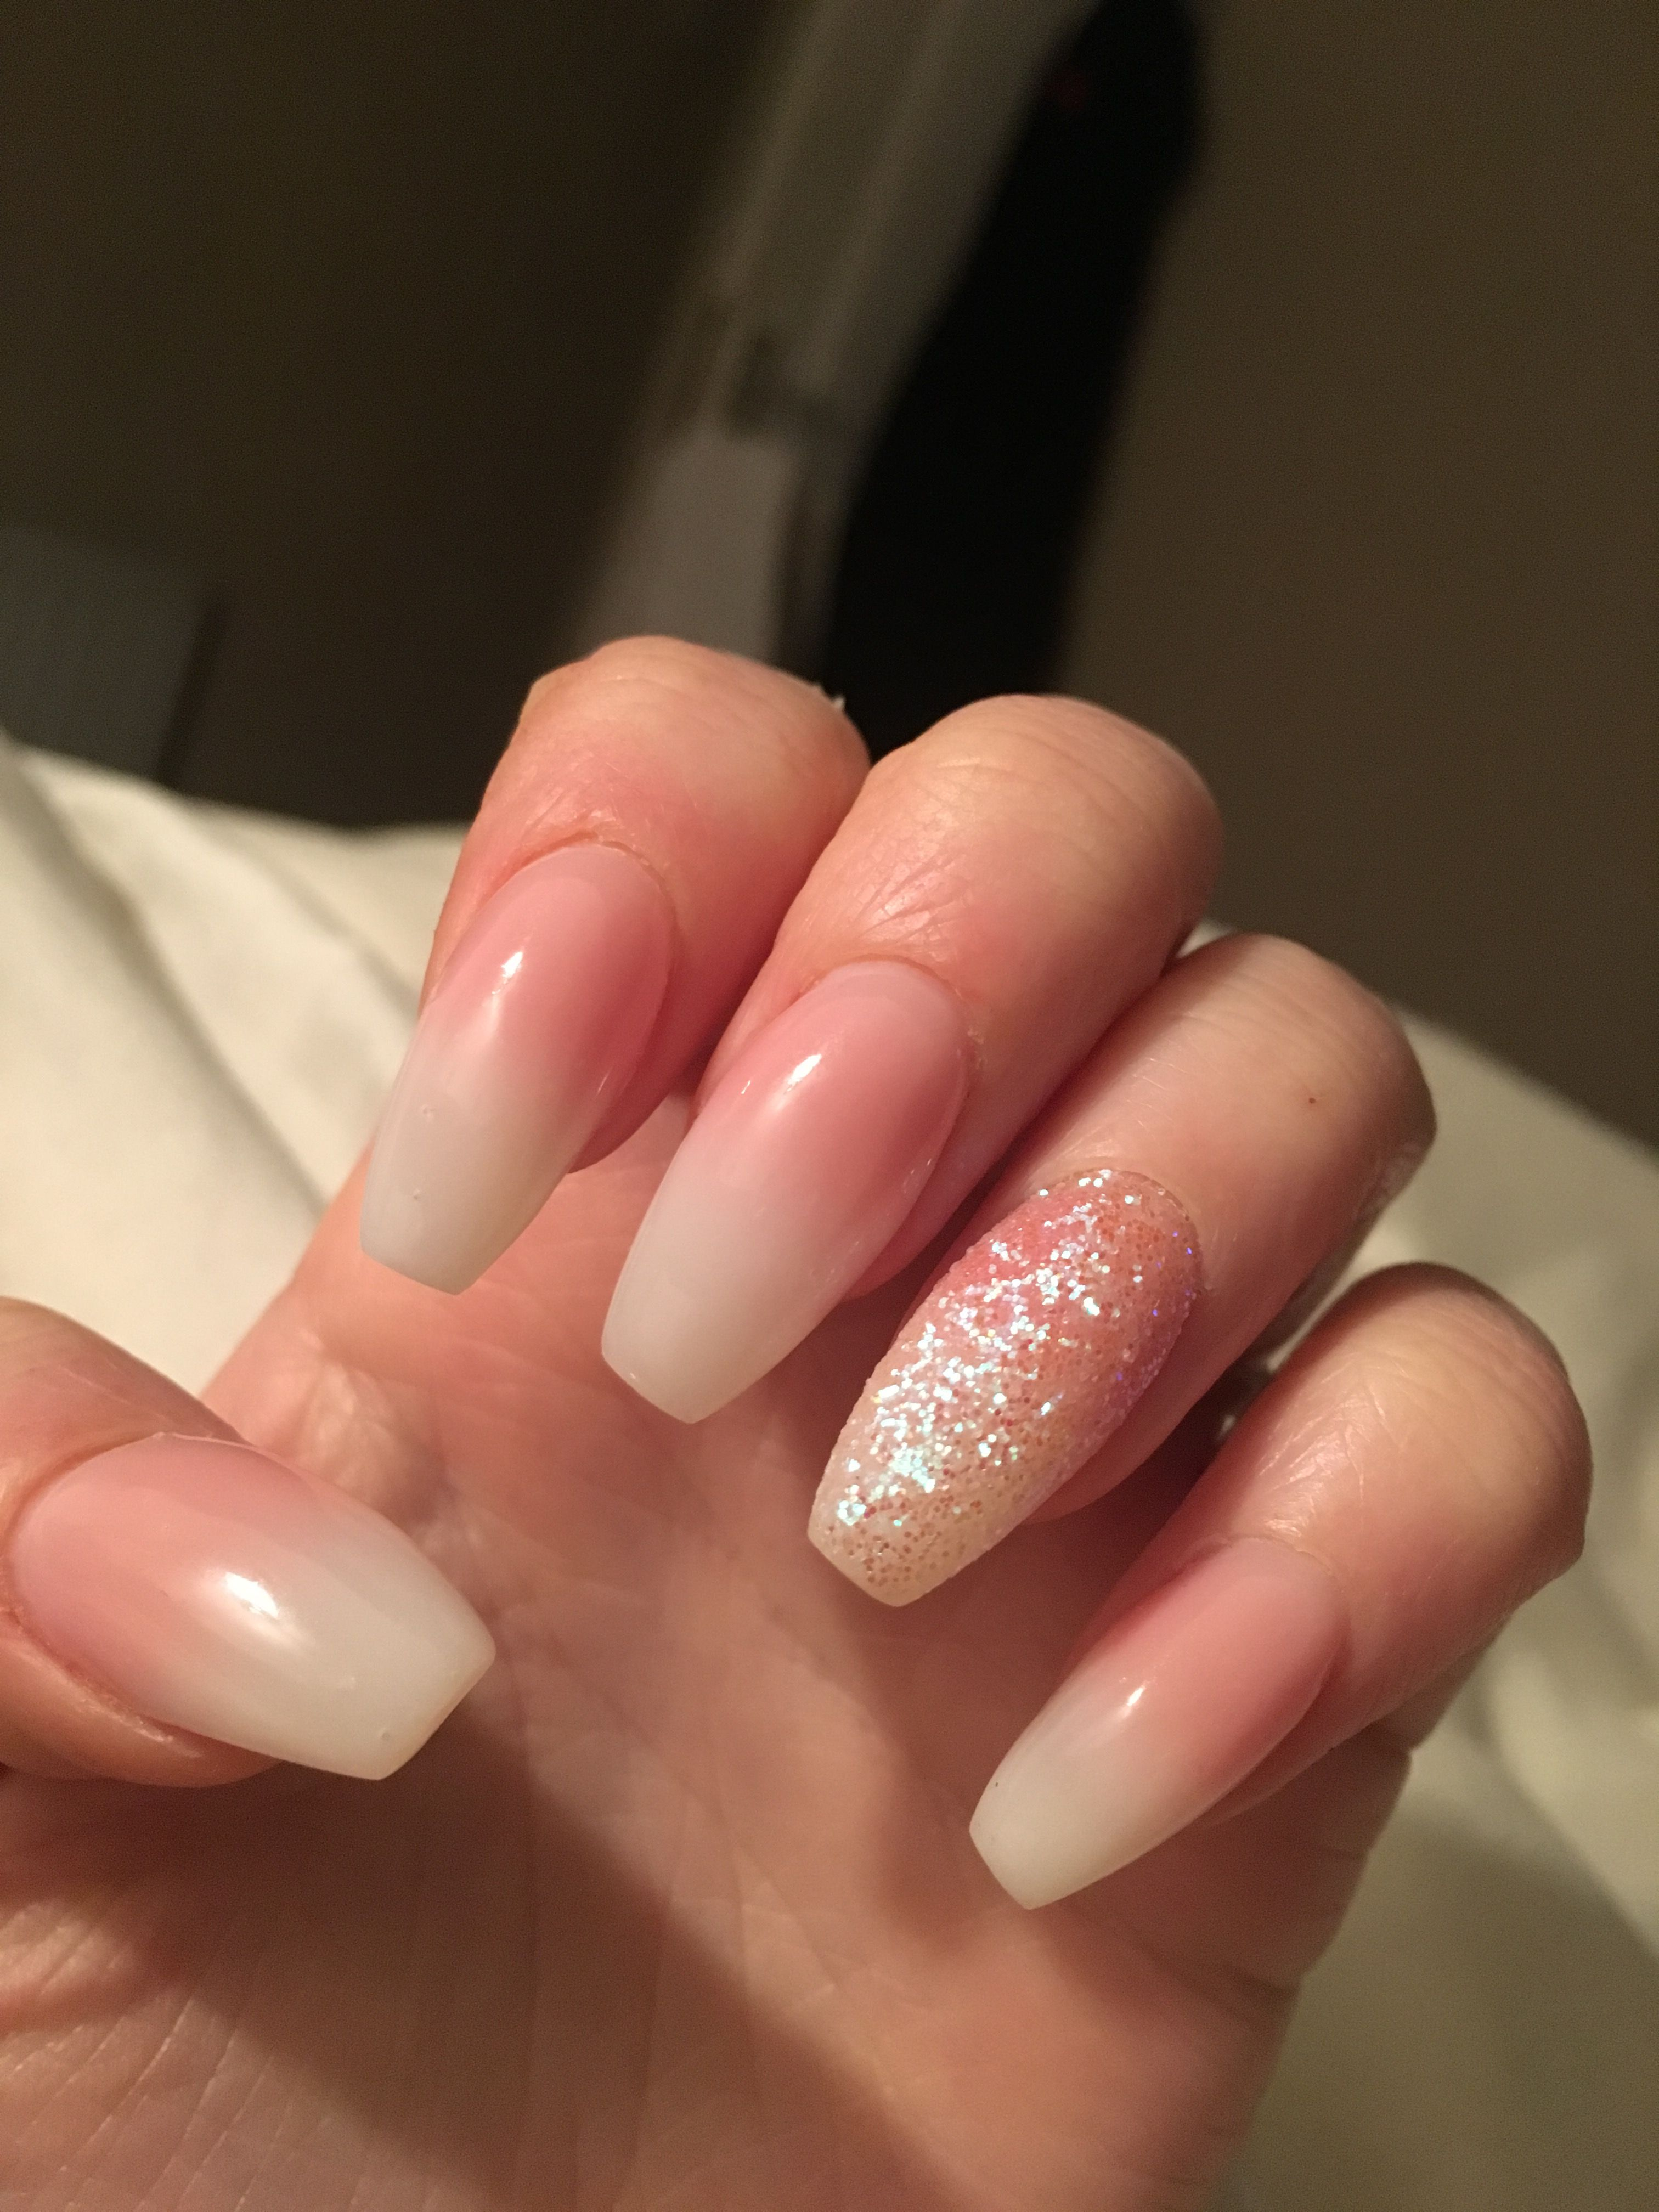 Gel Nails Baby Boomer Pink And White Ombre Glitter Gel Nails Pink Ombre Nails Gel Nails French